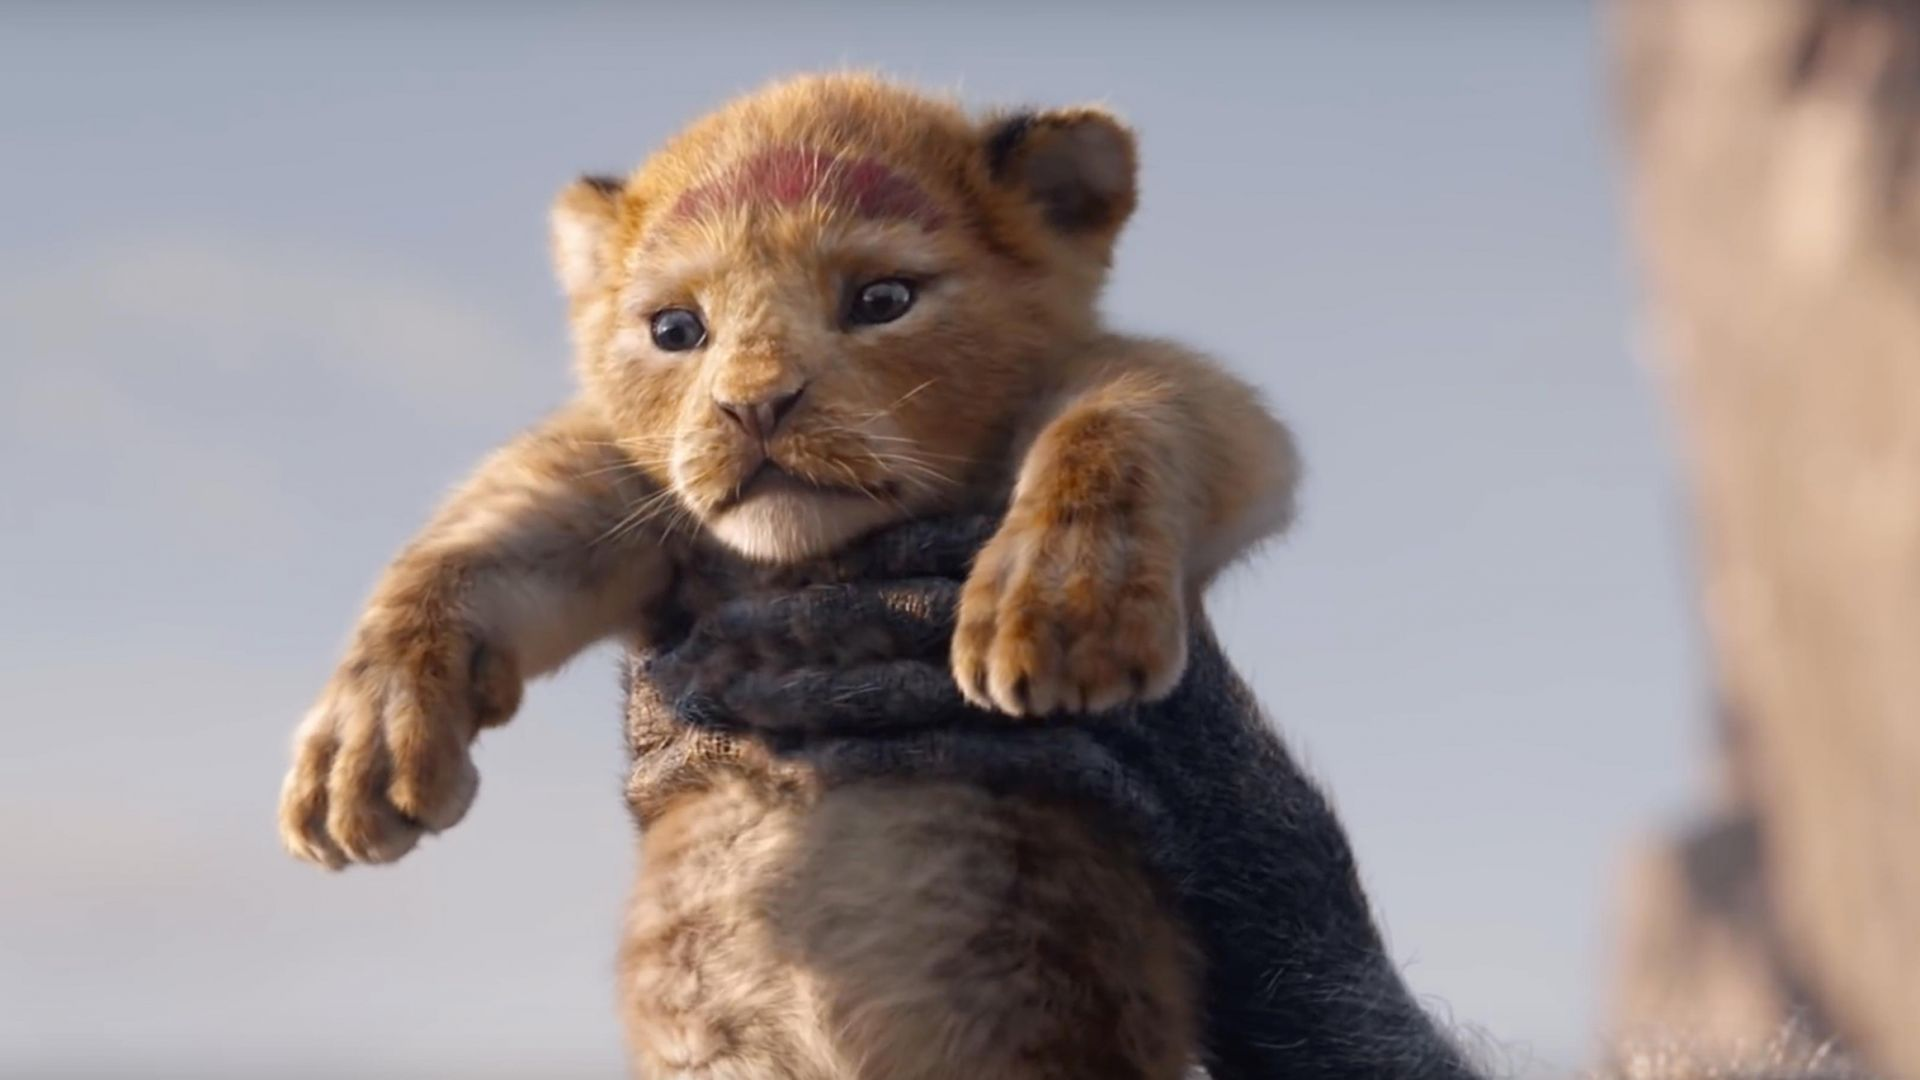 The Lion King, HD (horizontal)